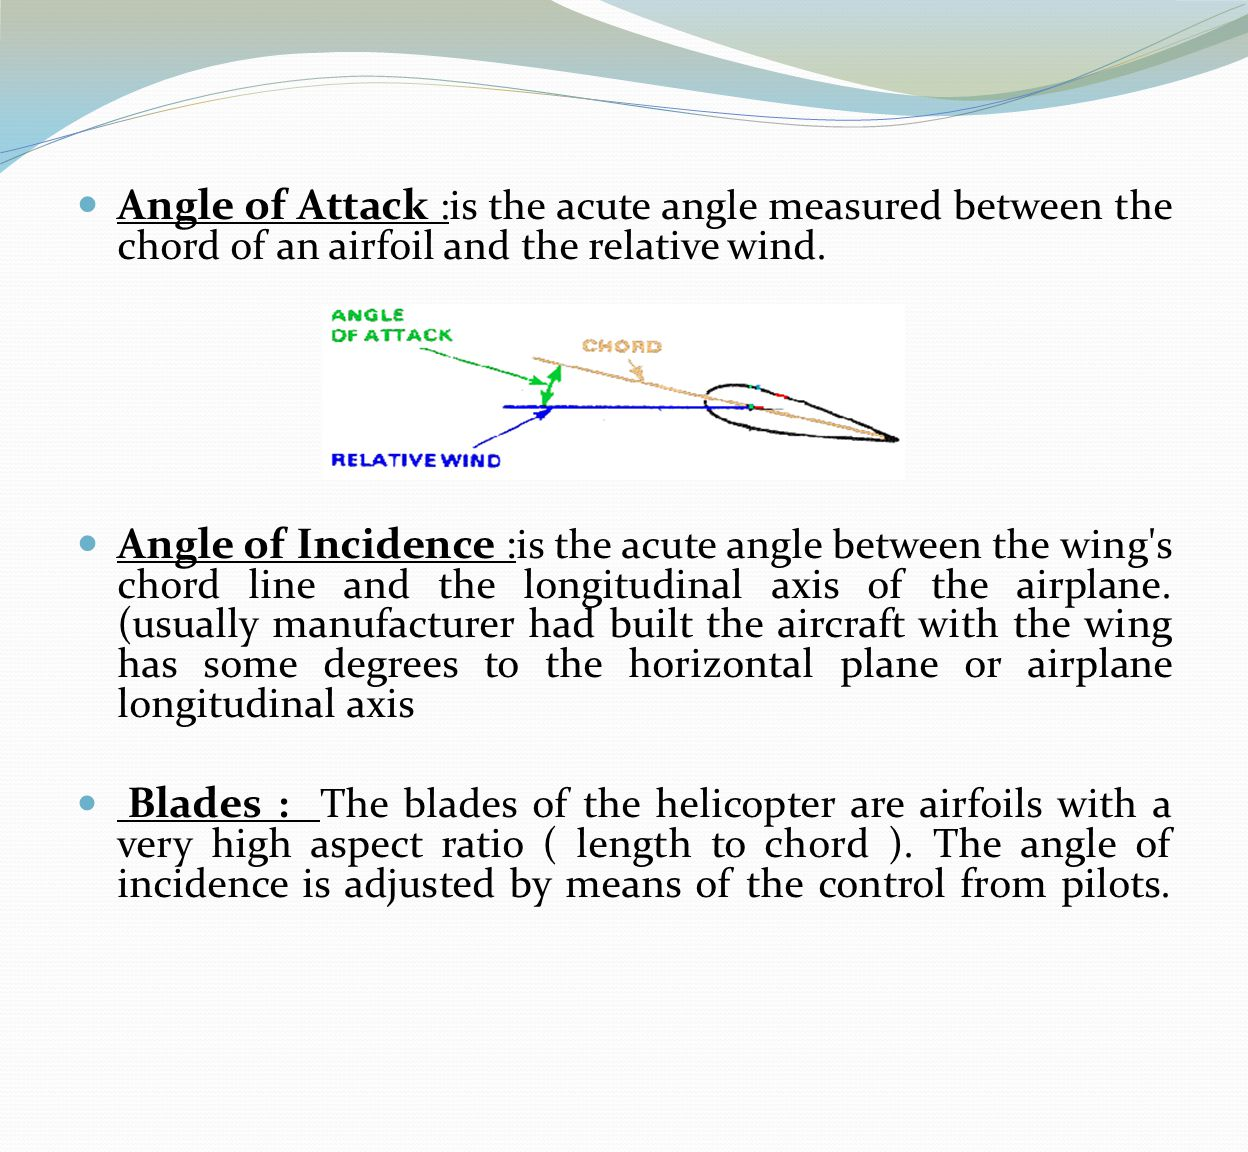 Angle of Attack :is the acute angle measured between the chord of an airfoil and the relative wind.